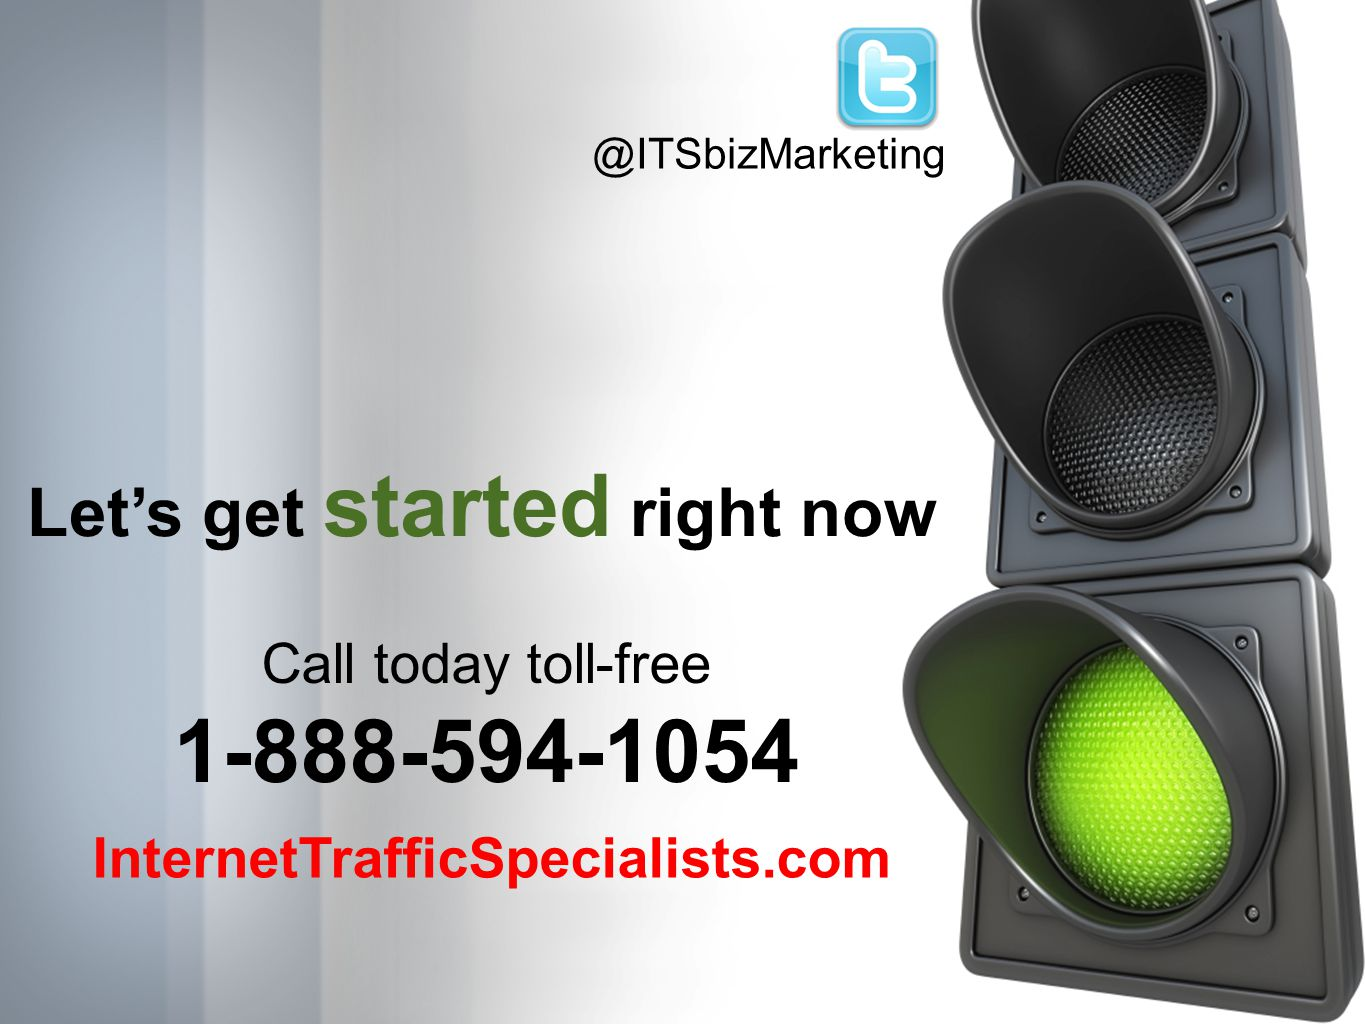 Lets get started right now Call today toll-free 1-888-594-1054 @ITSbizMarketing InternetTrafficSpecialists.com